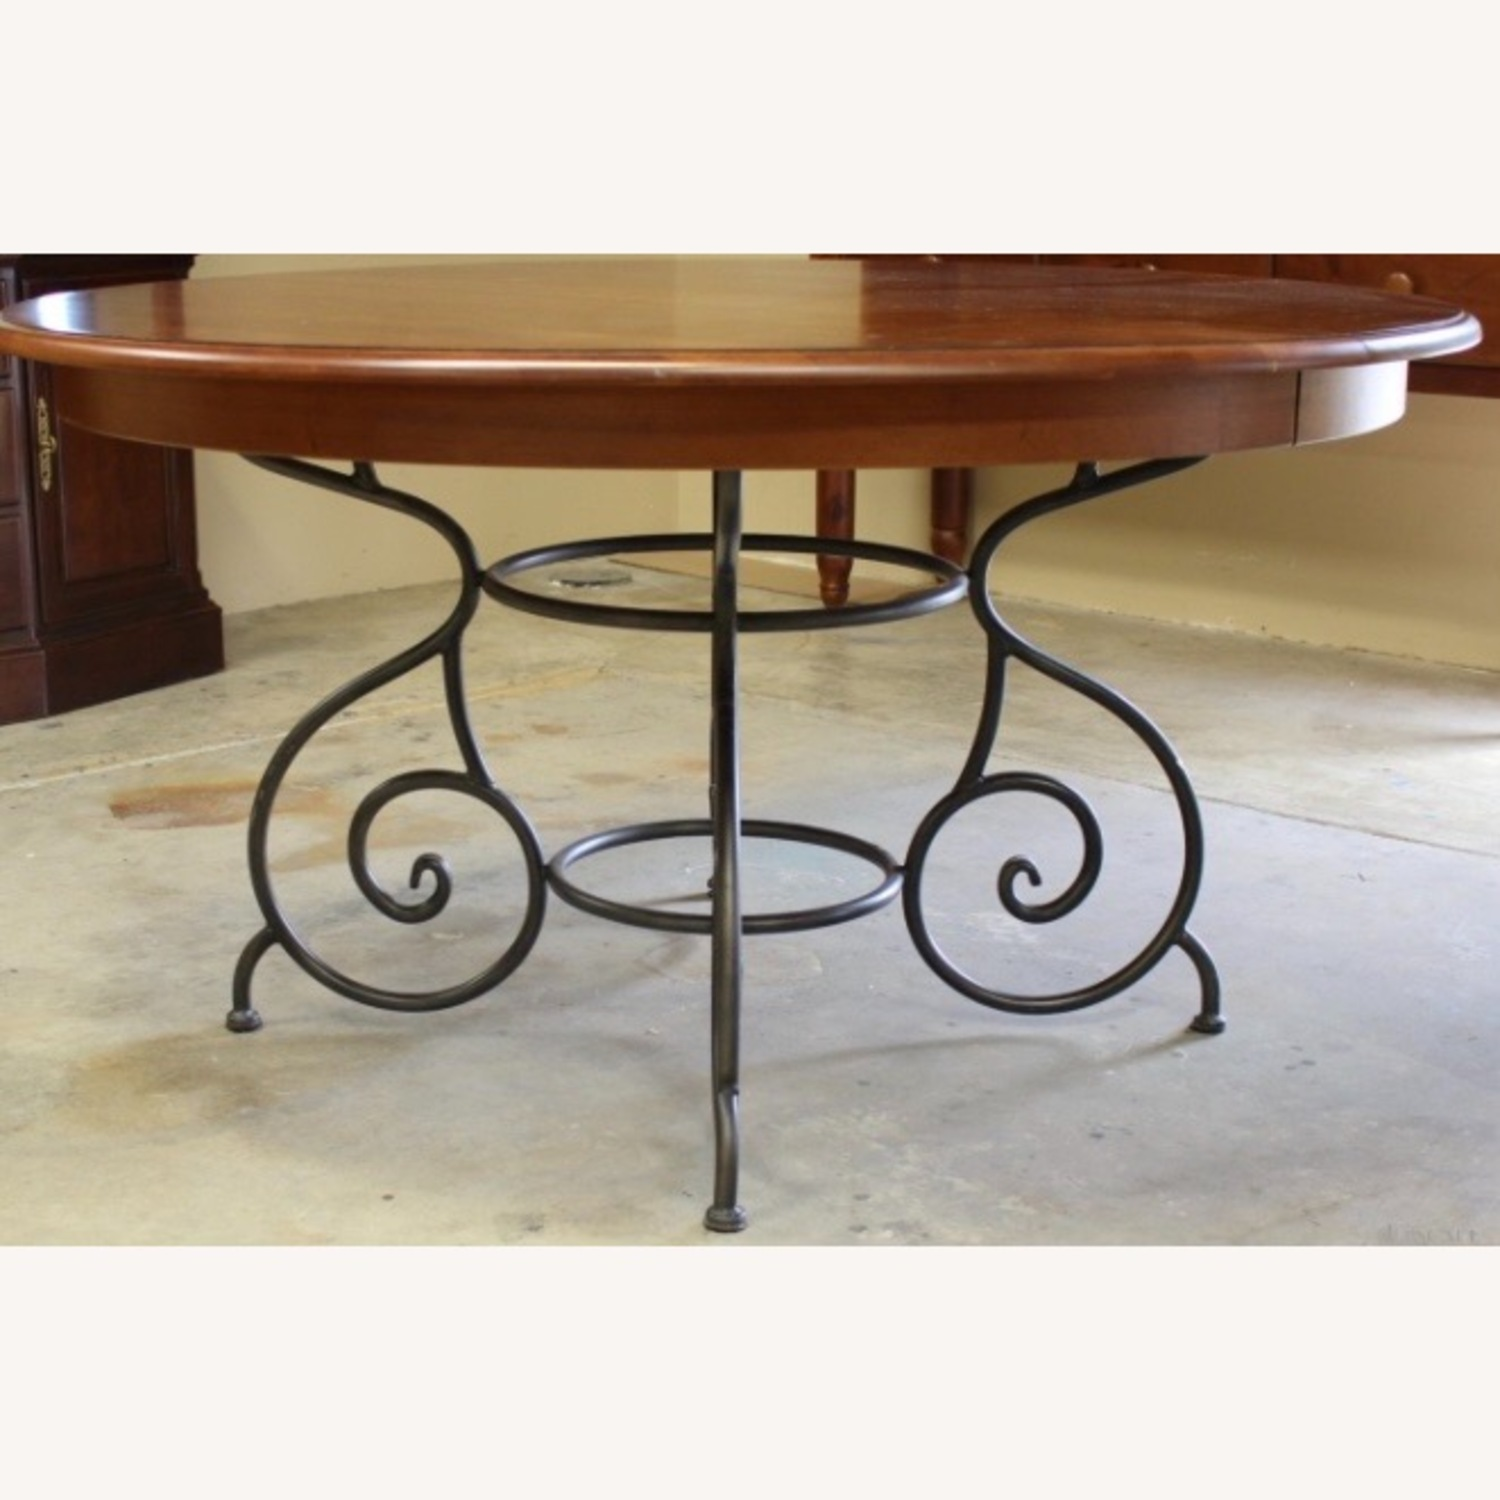 Ethan Allen Maisen Dining Table - image-6